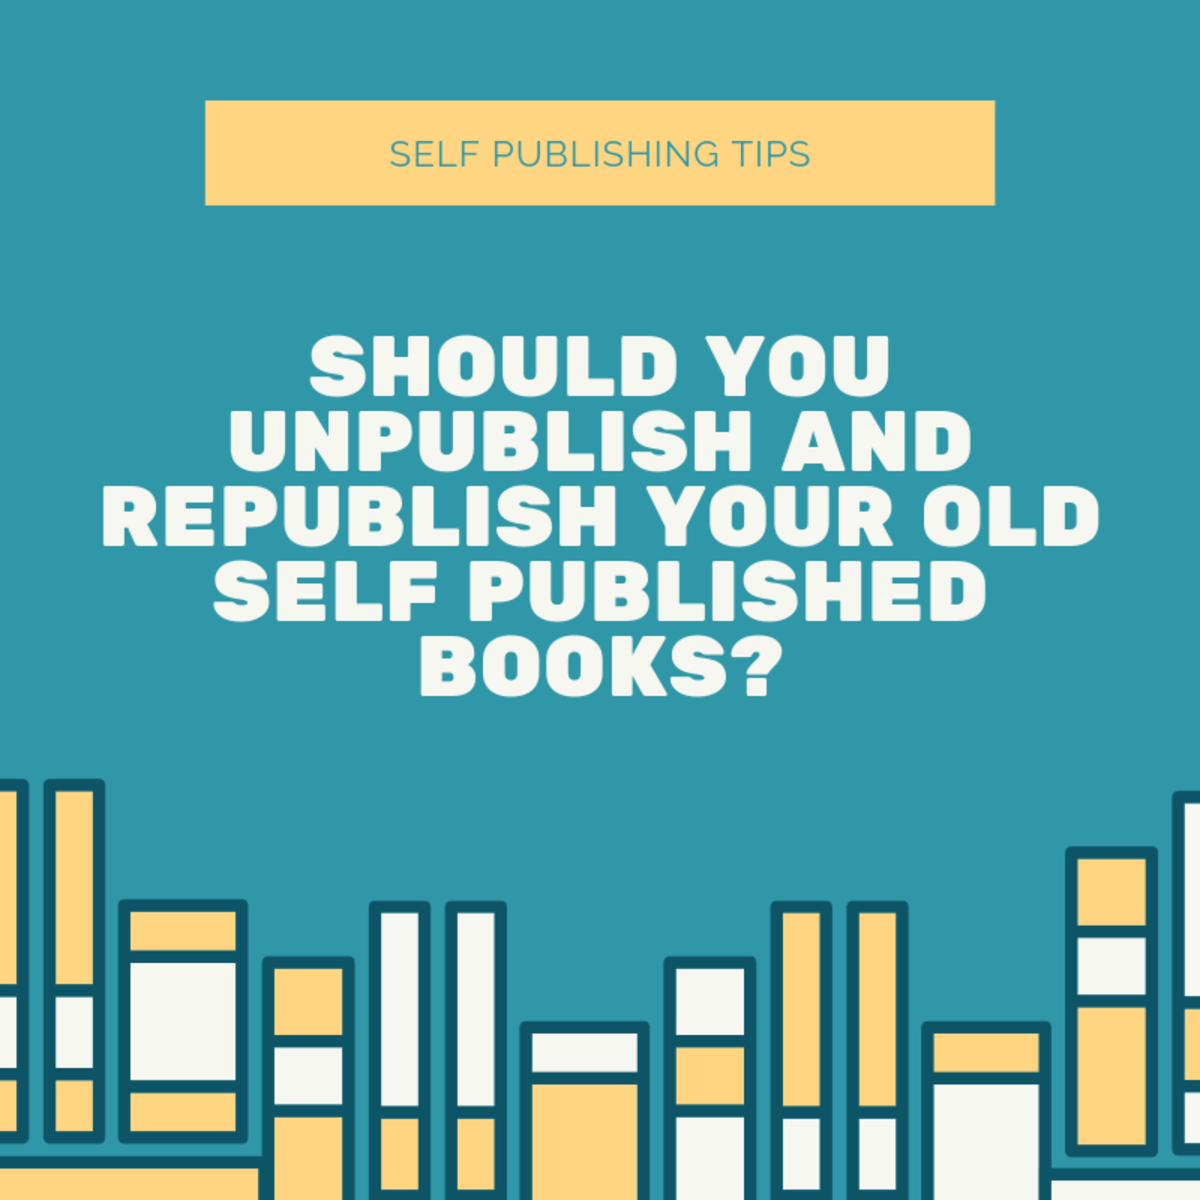 Should You Unpublish and Republish Your Old Self-Published Books?